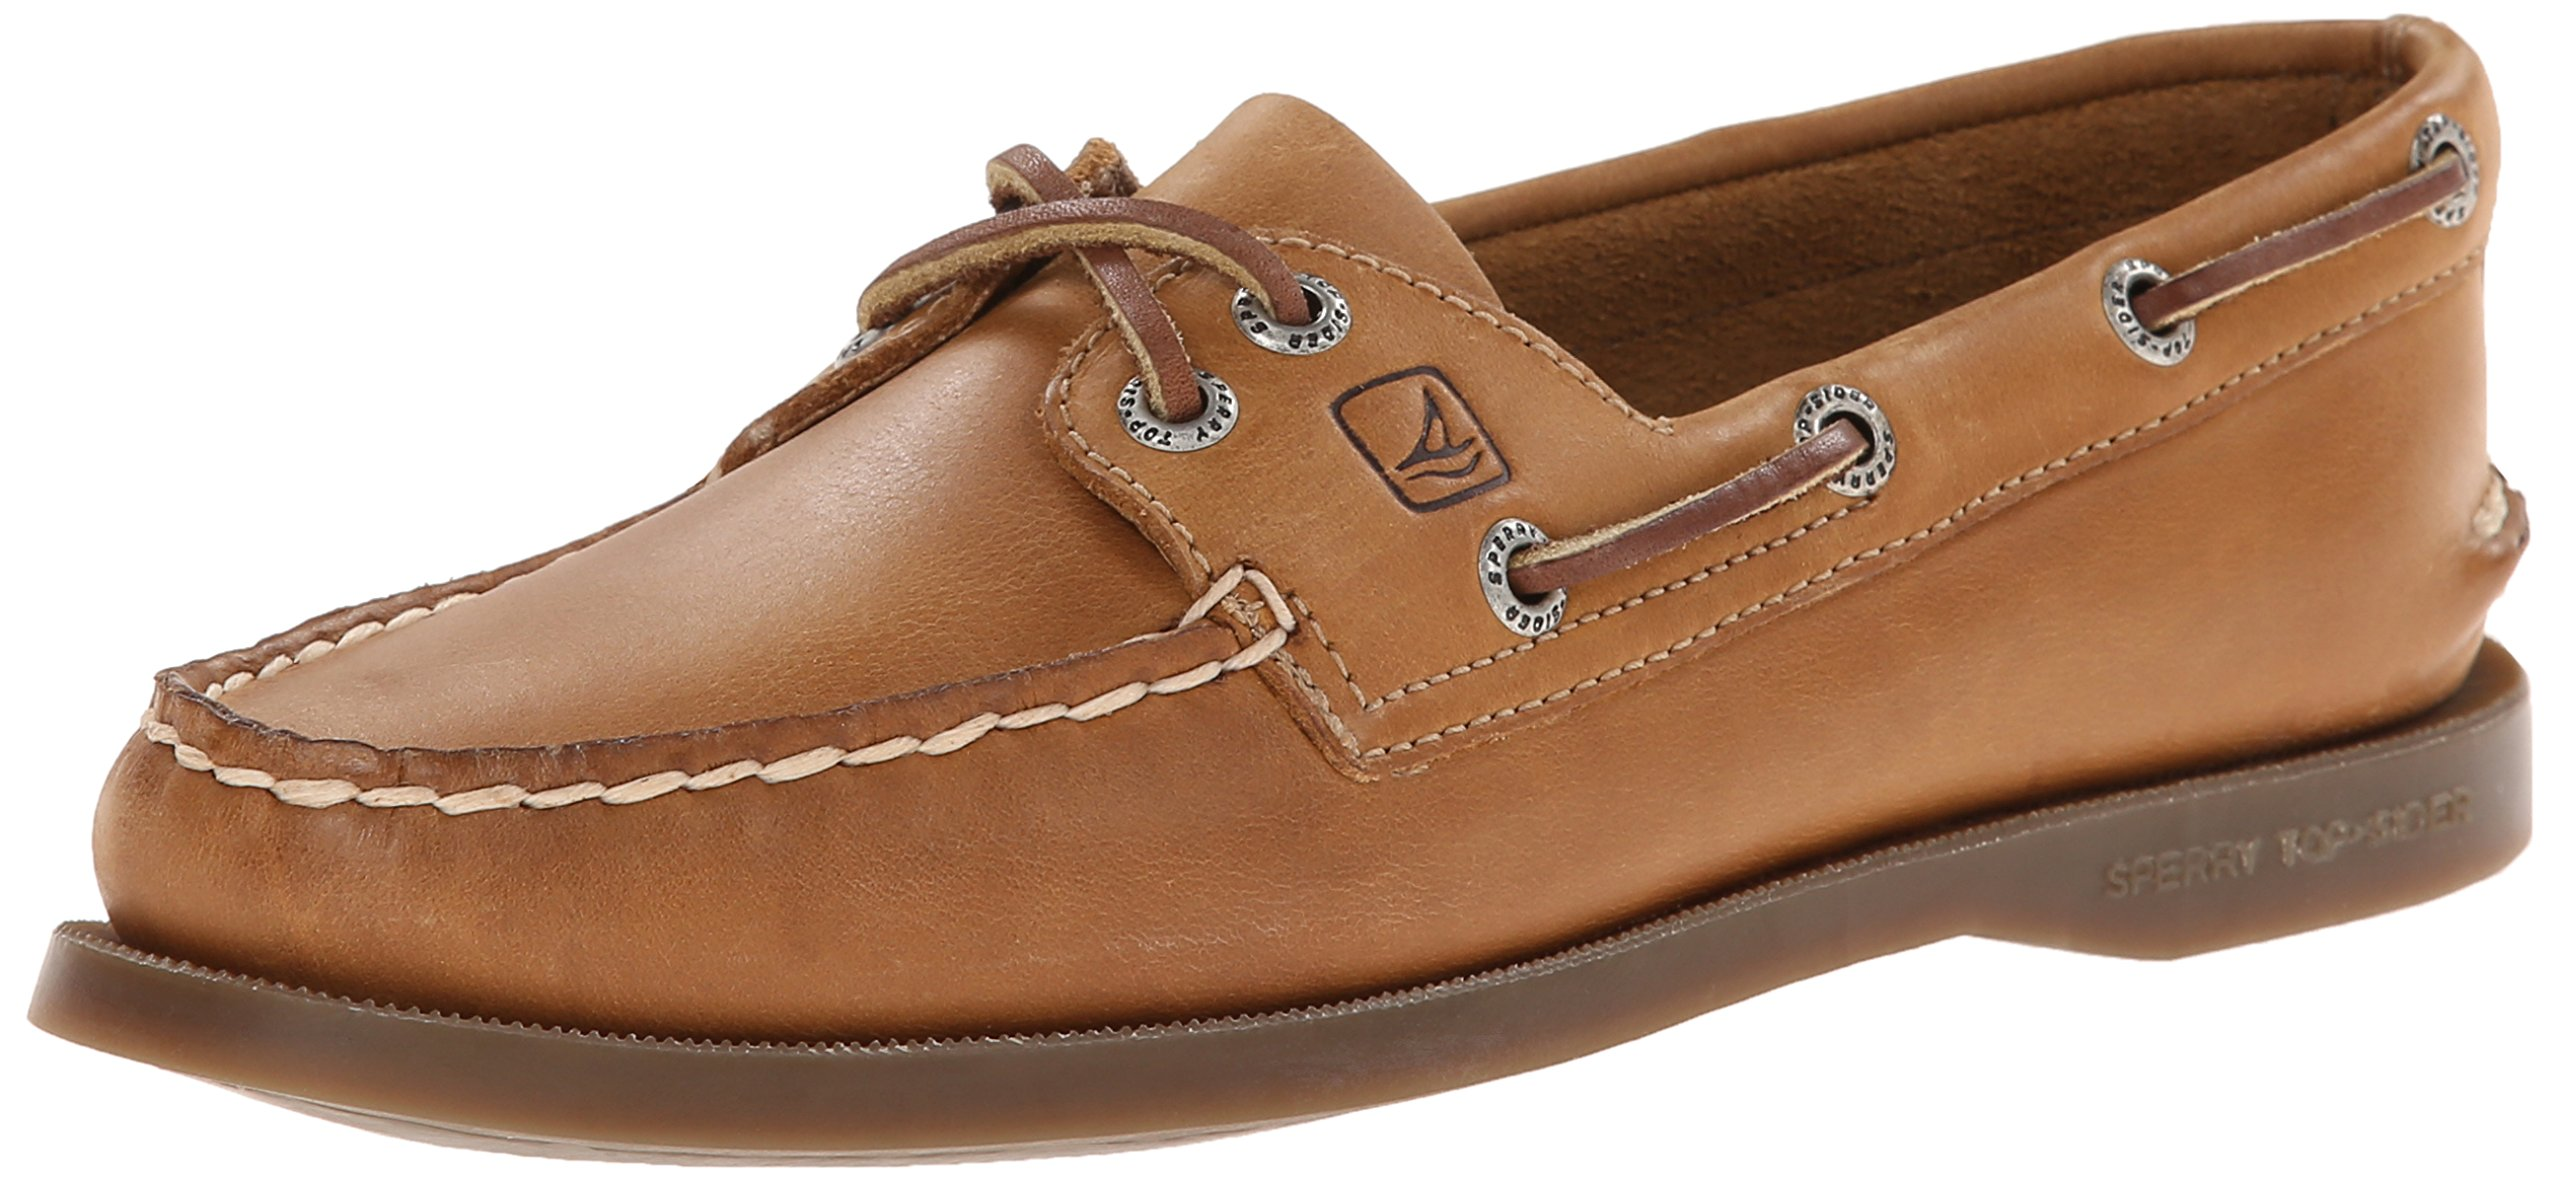 Sperry Top-Sider Women's Authentic Original 2-Eye Boat Shoe,Sahara ,9.5 M US